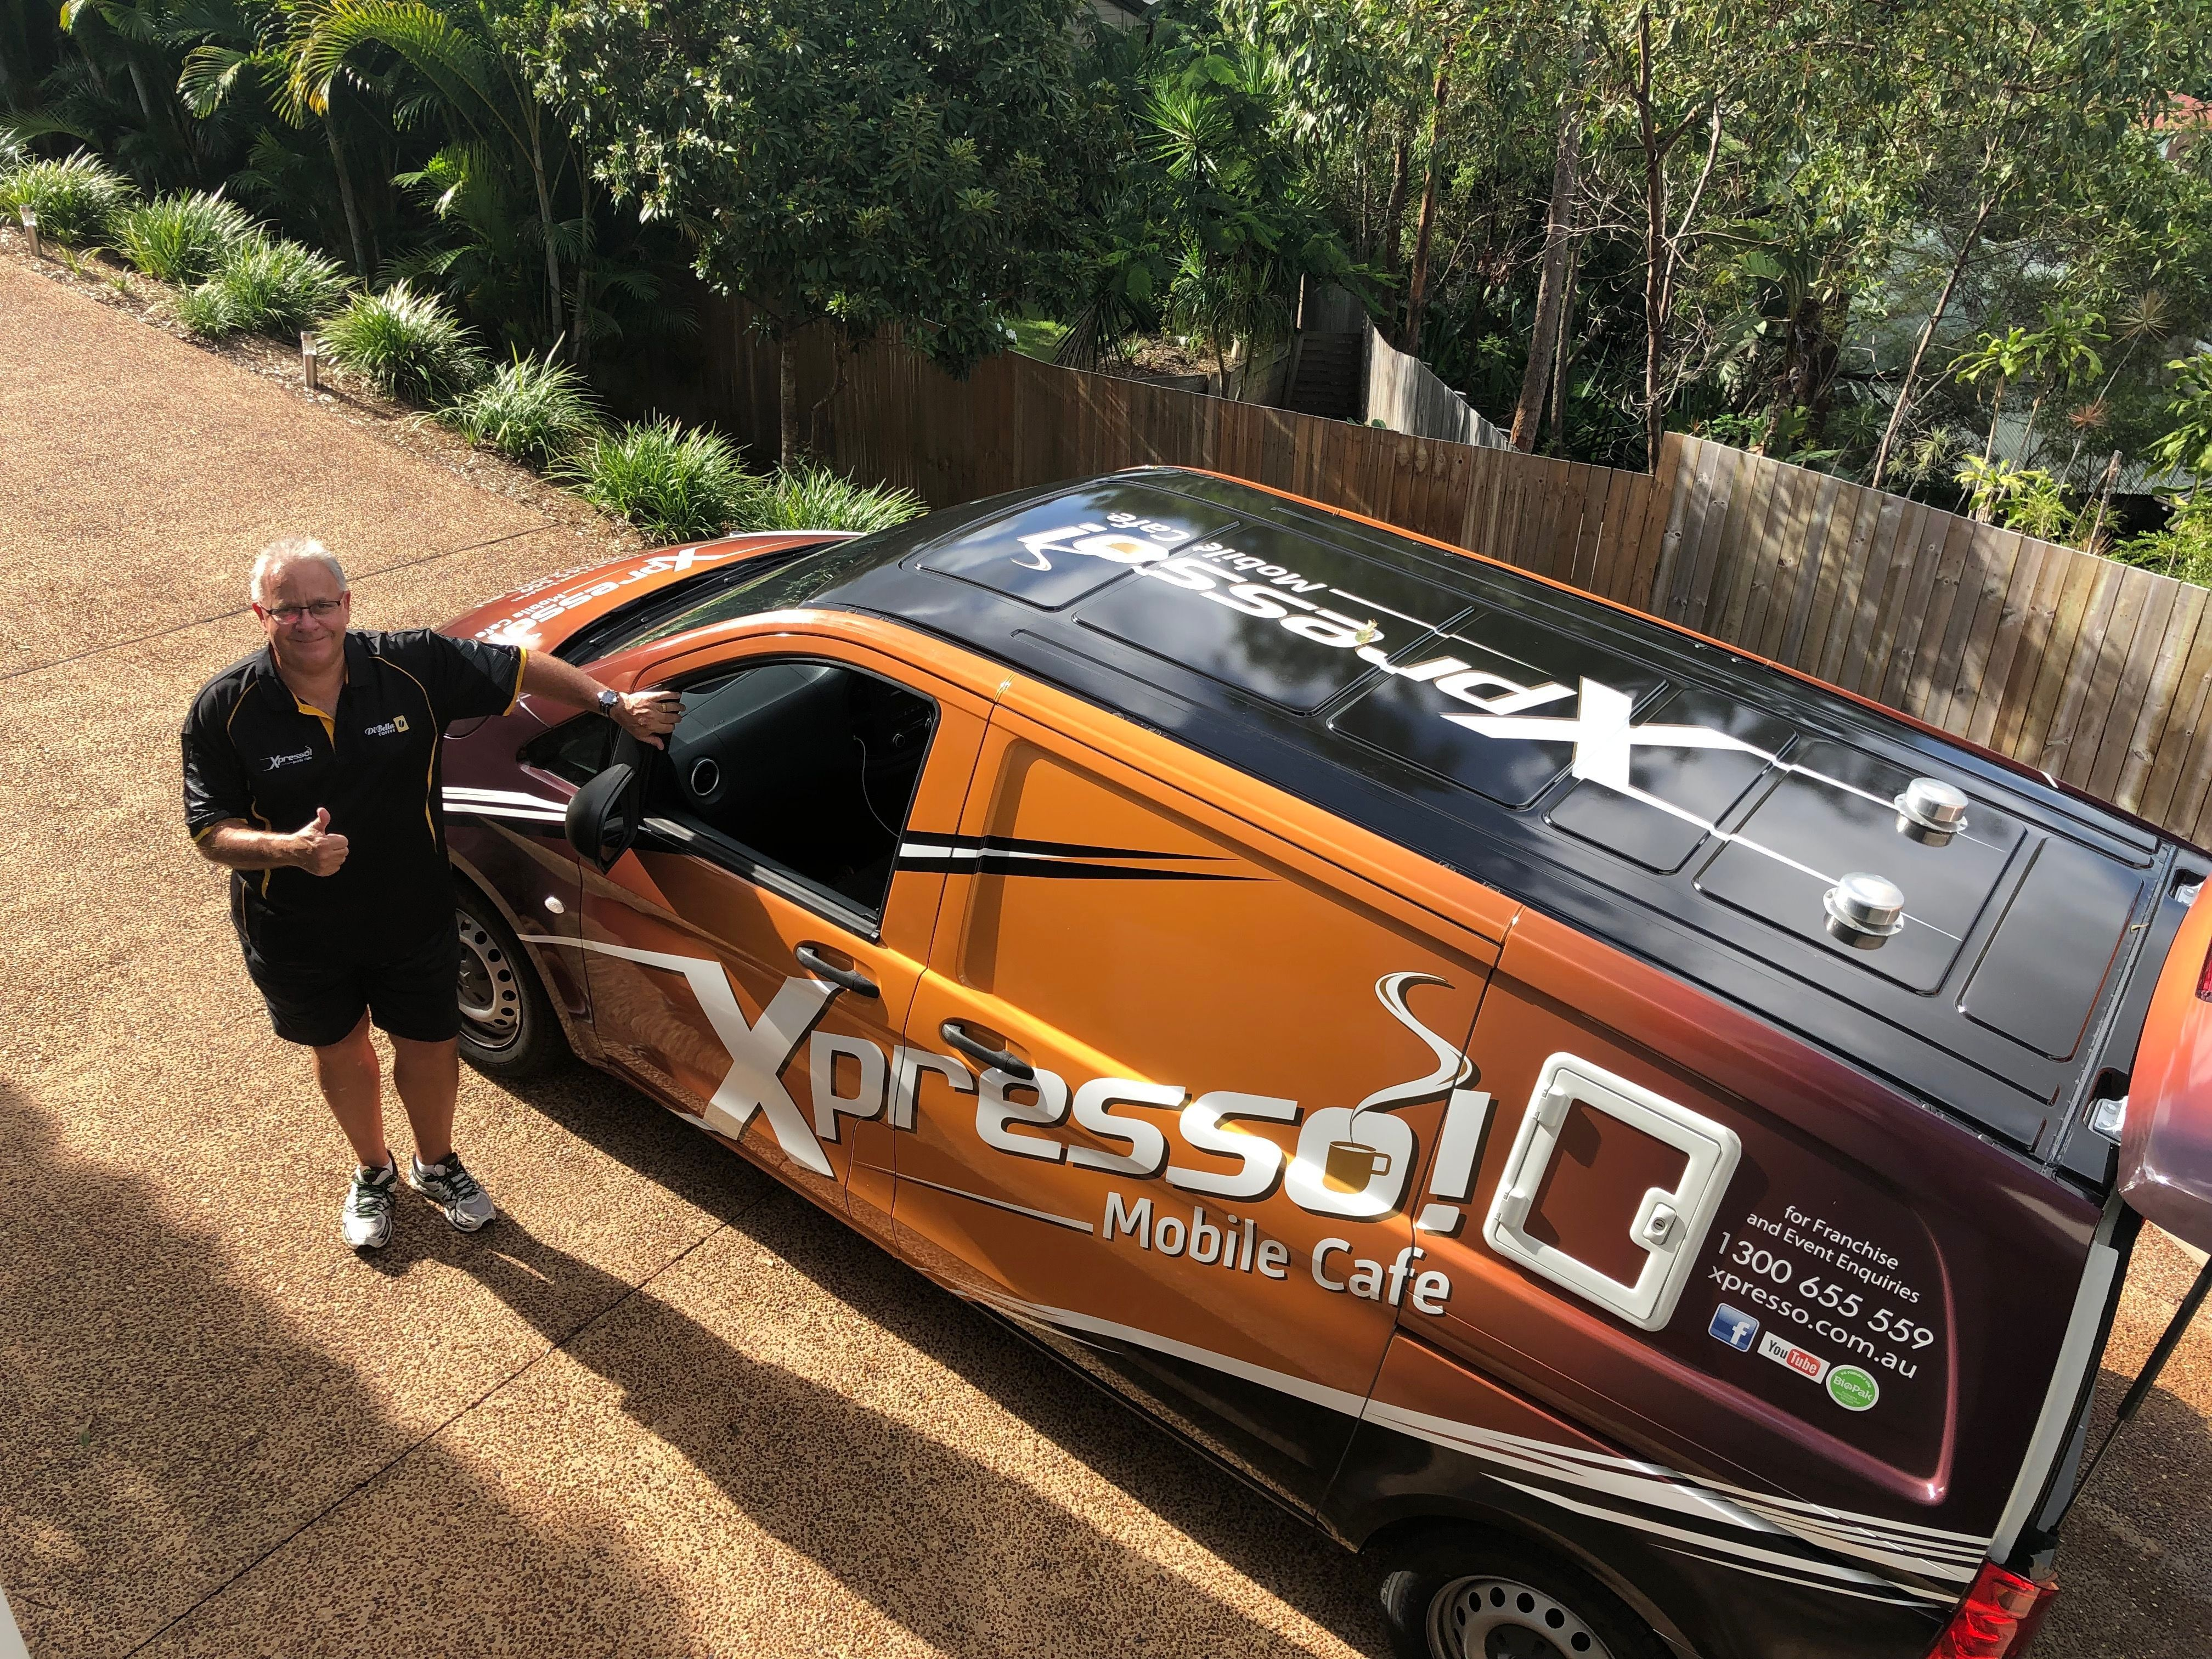 Xpresso Mobile Cafe earns 4-star rating | Inside Franchise Business